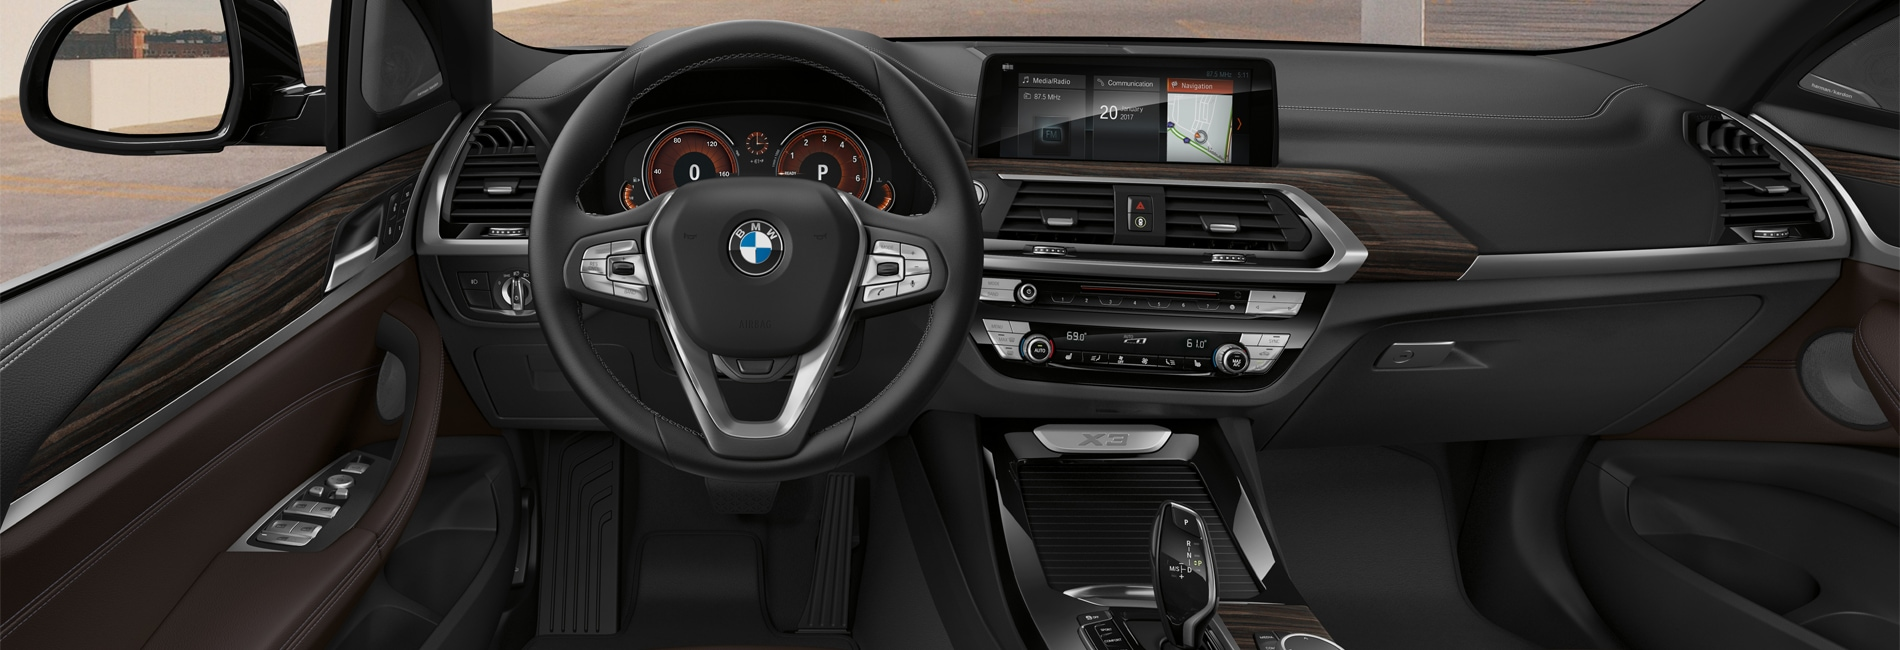 2020 BMW X3 Interior Features